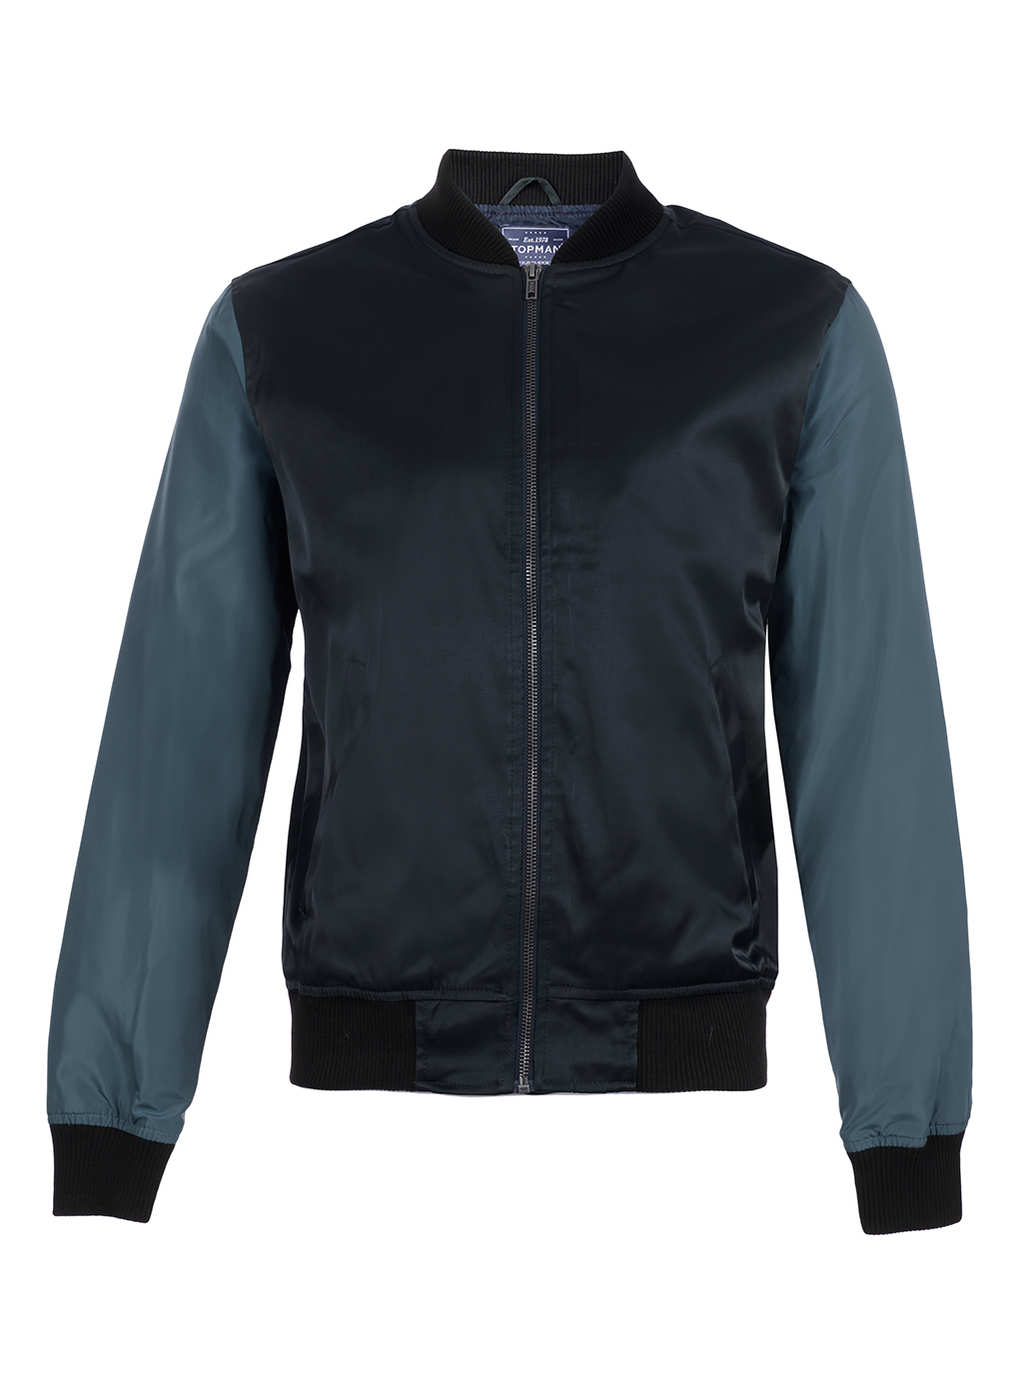 Navy Contrast Sleeve Bomber Jacket, now $50.   See Courtney wearing a similar one !